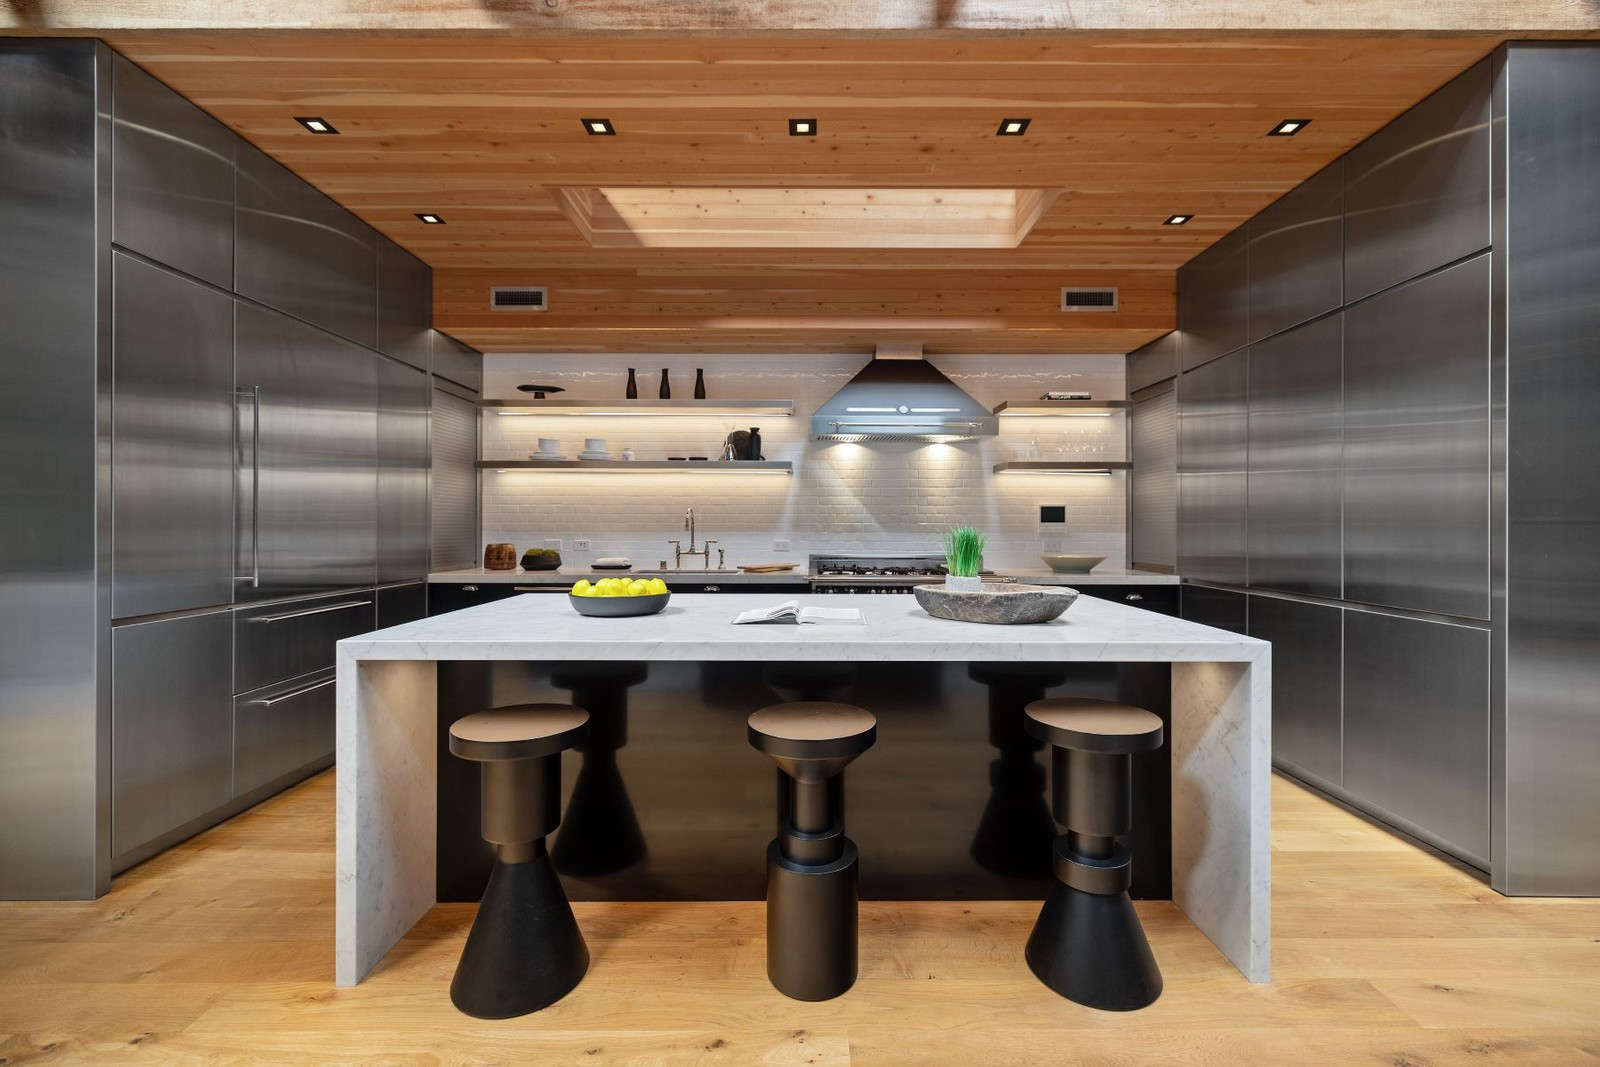 Stainless steel appliances and marble countertops in the kitchen